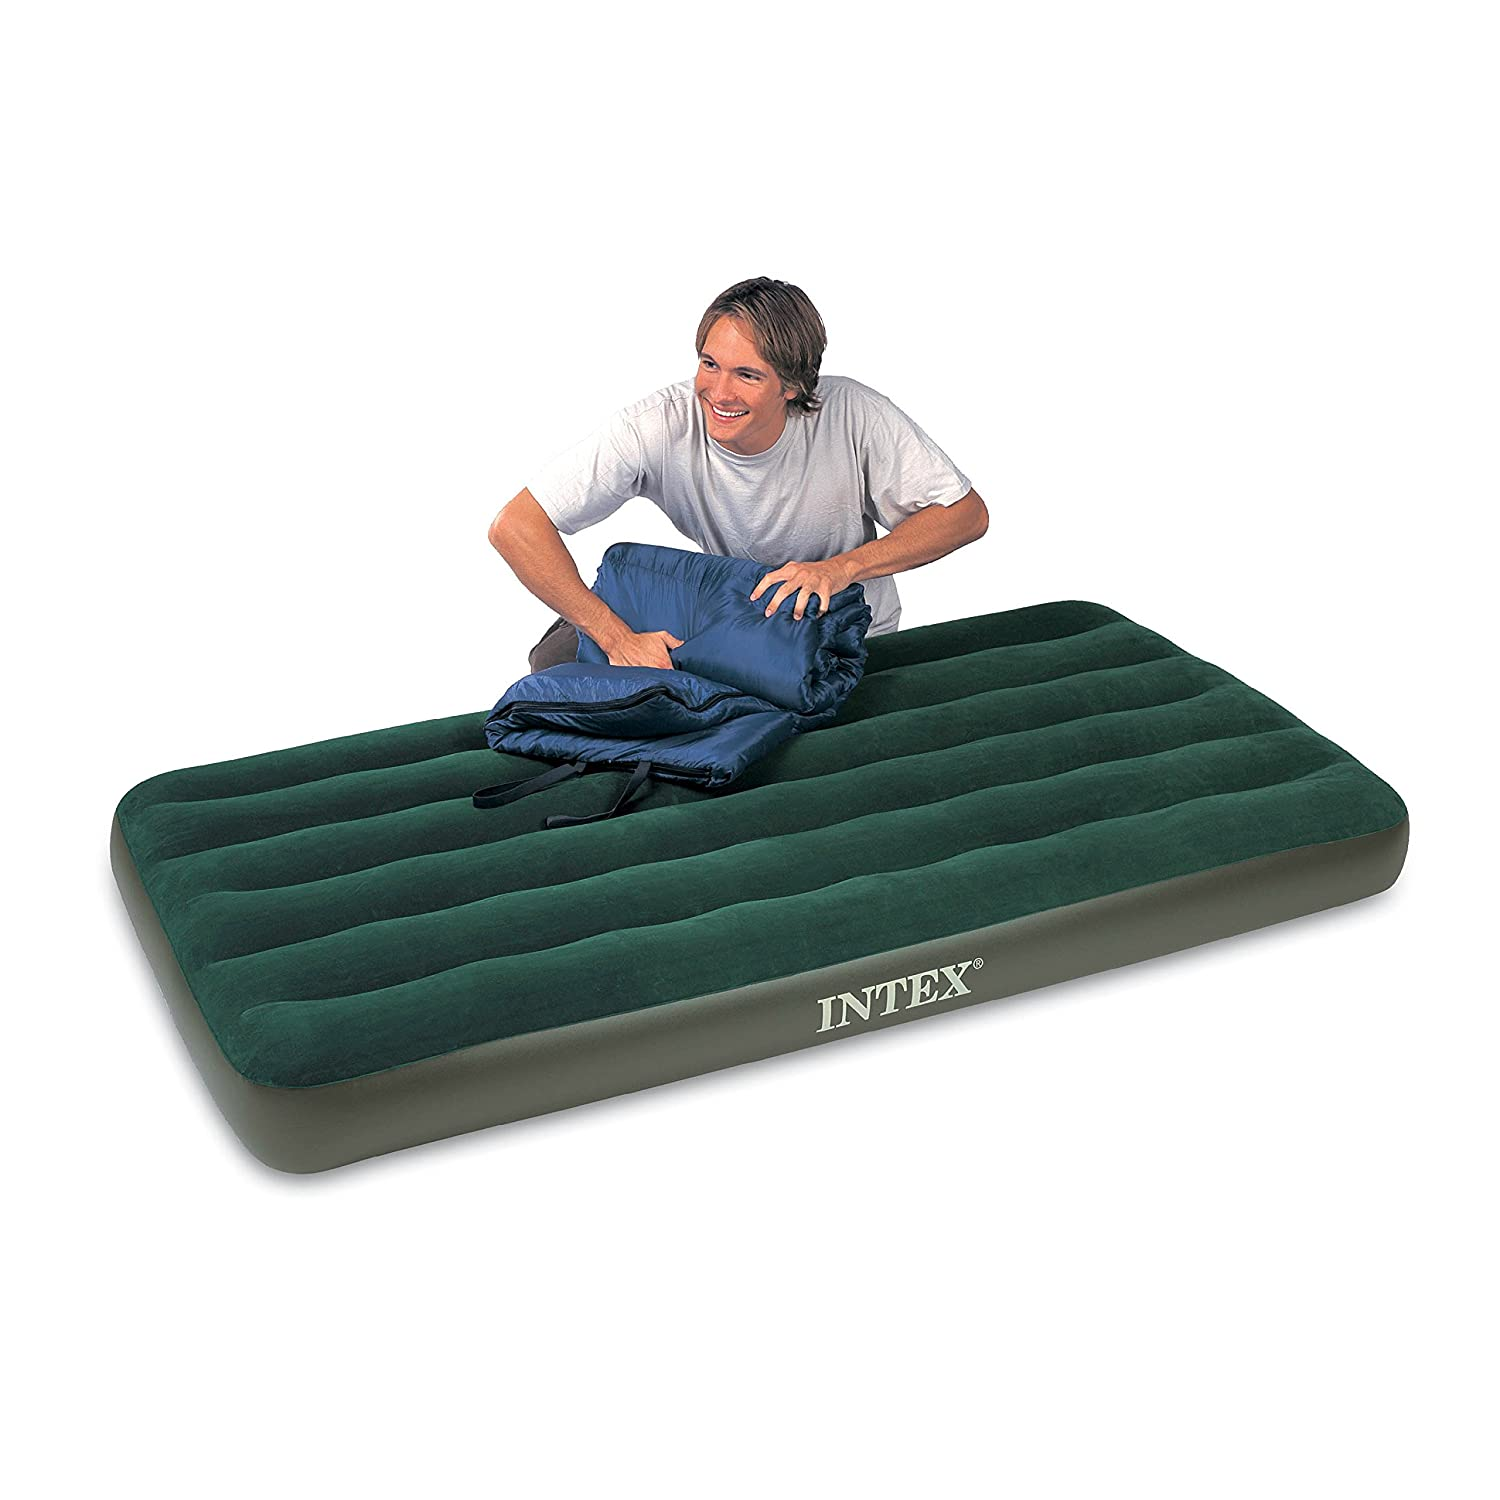 Fabulous Amazon Intex Prestige Downy Airbed Kit with Hand Held Battery Pump Twin Camping Air Mattresses Sports u Outdoors